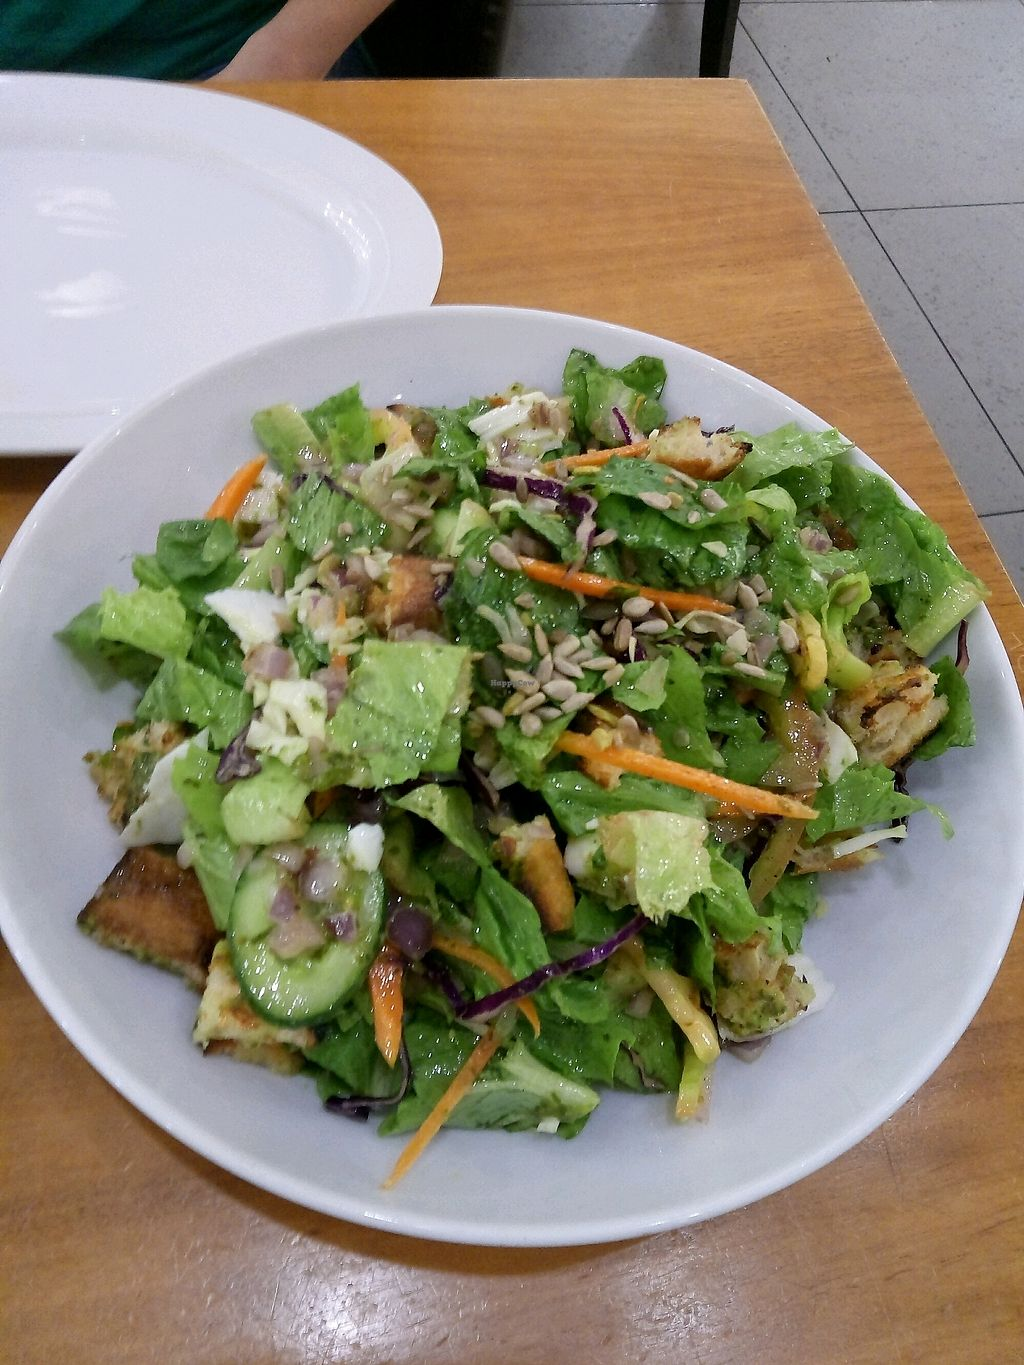 "Photo of Cafe Greg  by <a href=""/members/profile/Babai"">Babai</a> <br/>sweet potato and vegan cheese salad <br/> November 1, 2017  - <a href='/contact/abuse/image/70960/320916'>Report</a>"